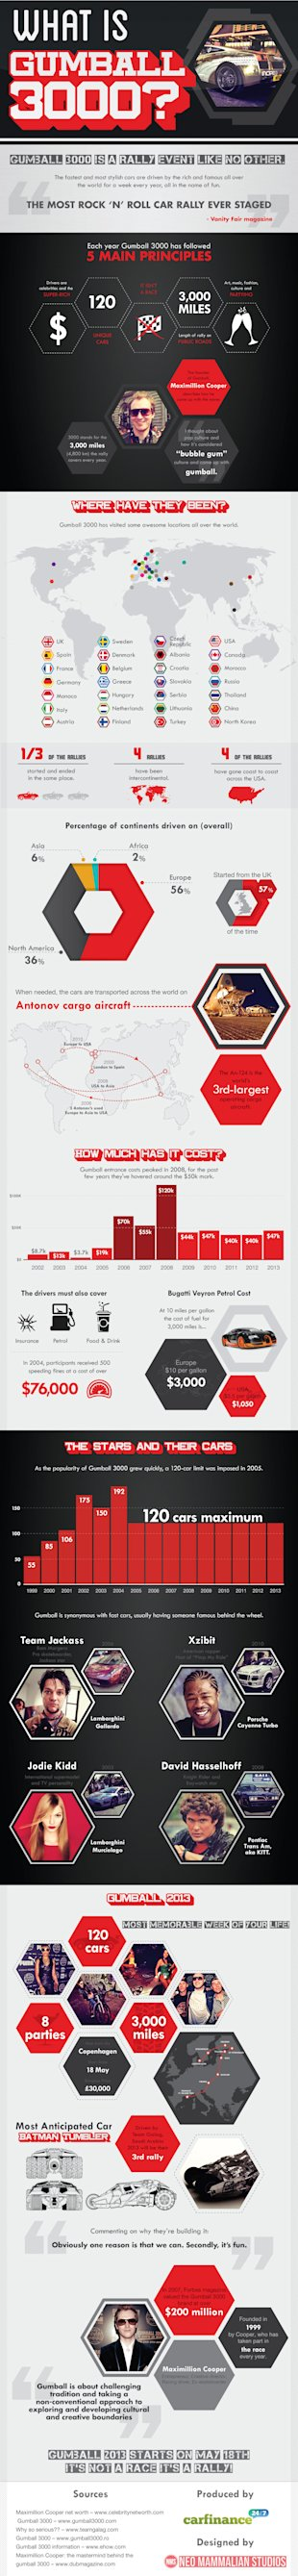 What is Gumball 3000? [Infographic] image what is gumball 3000 2